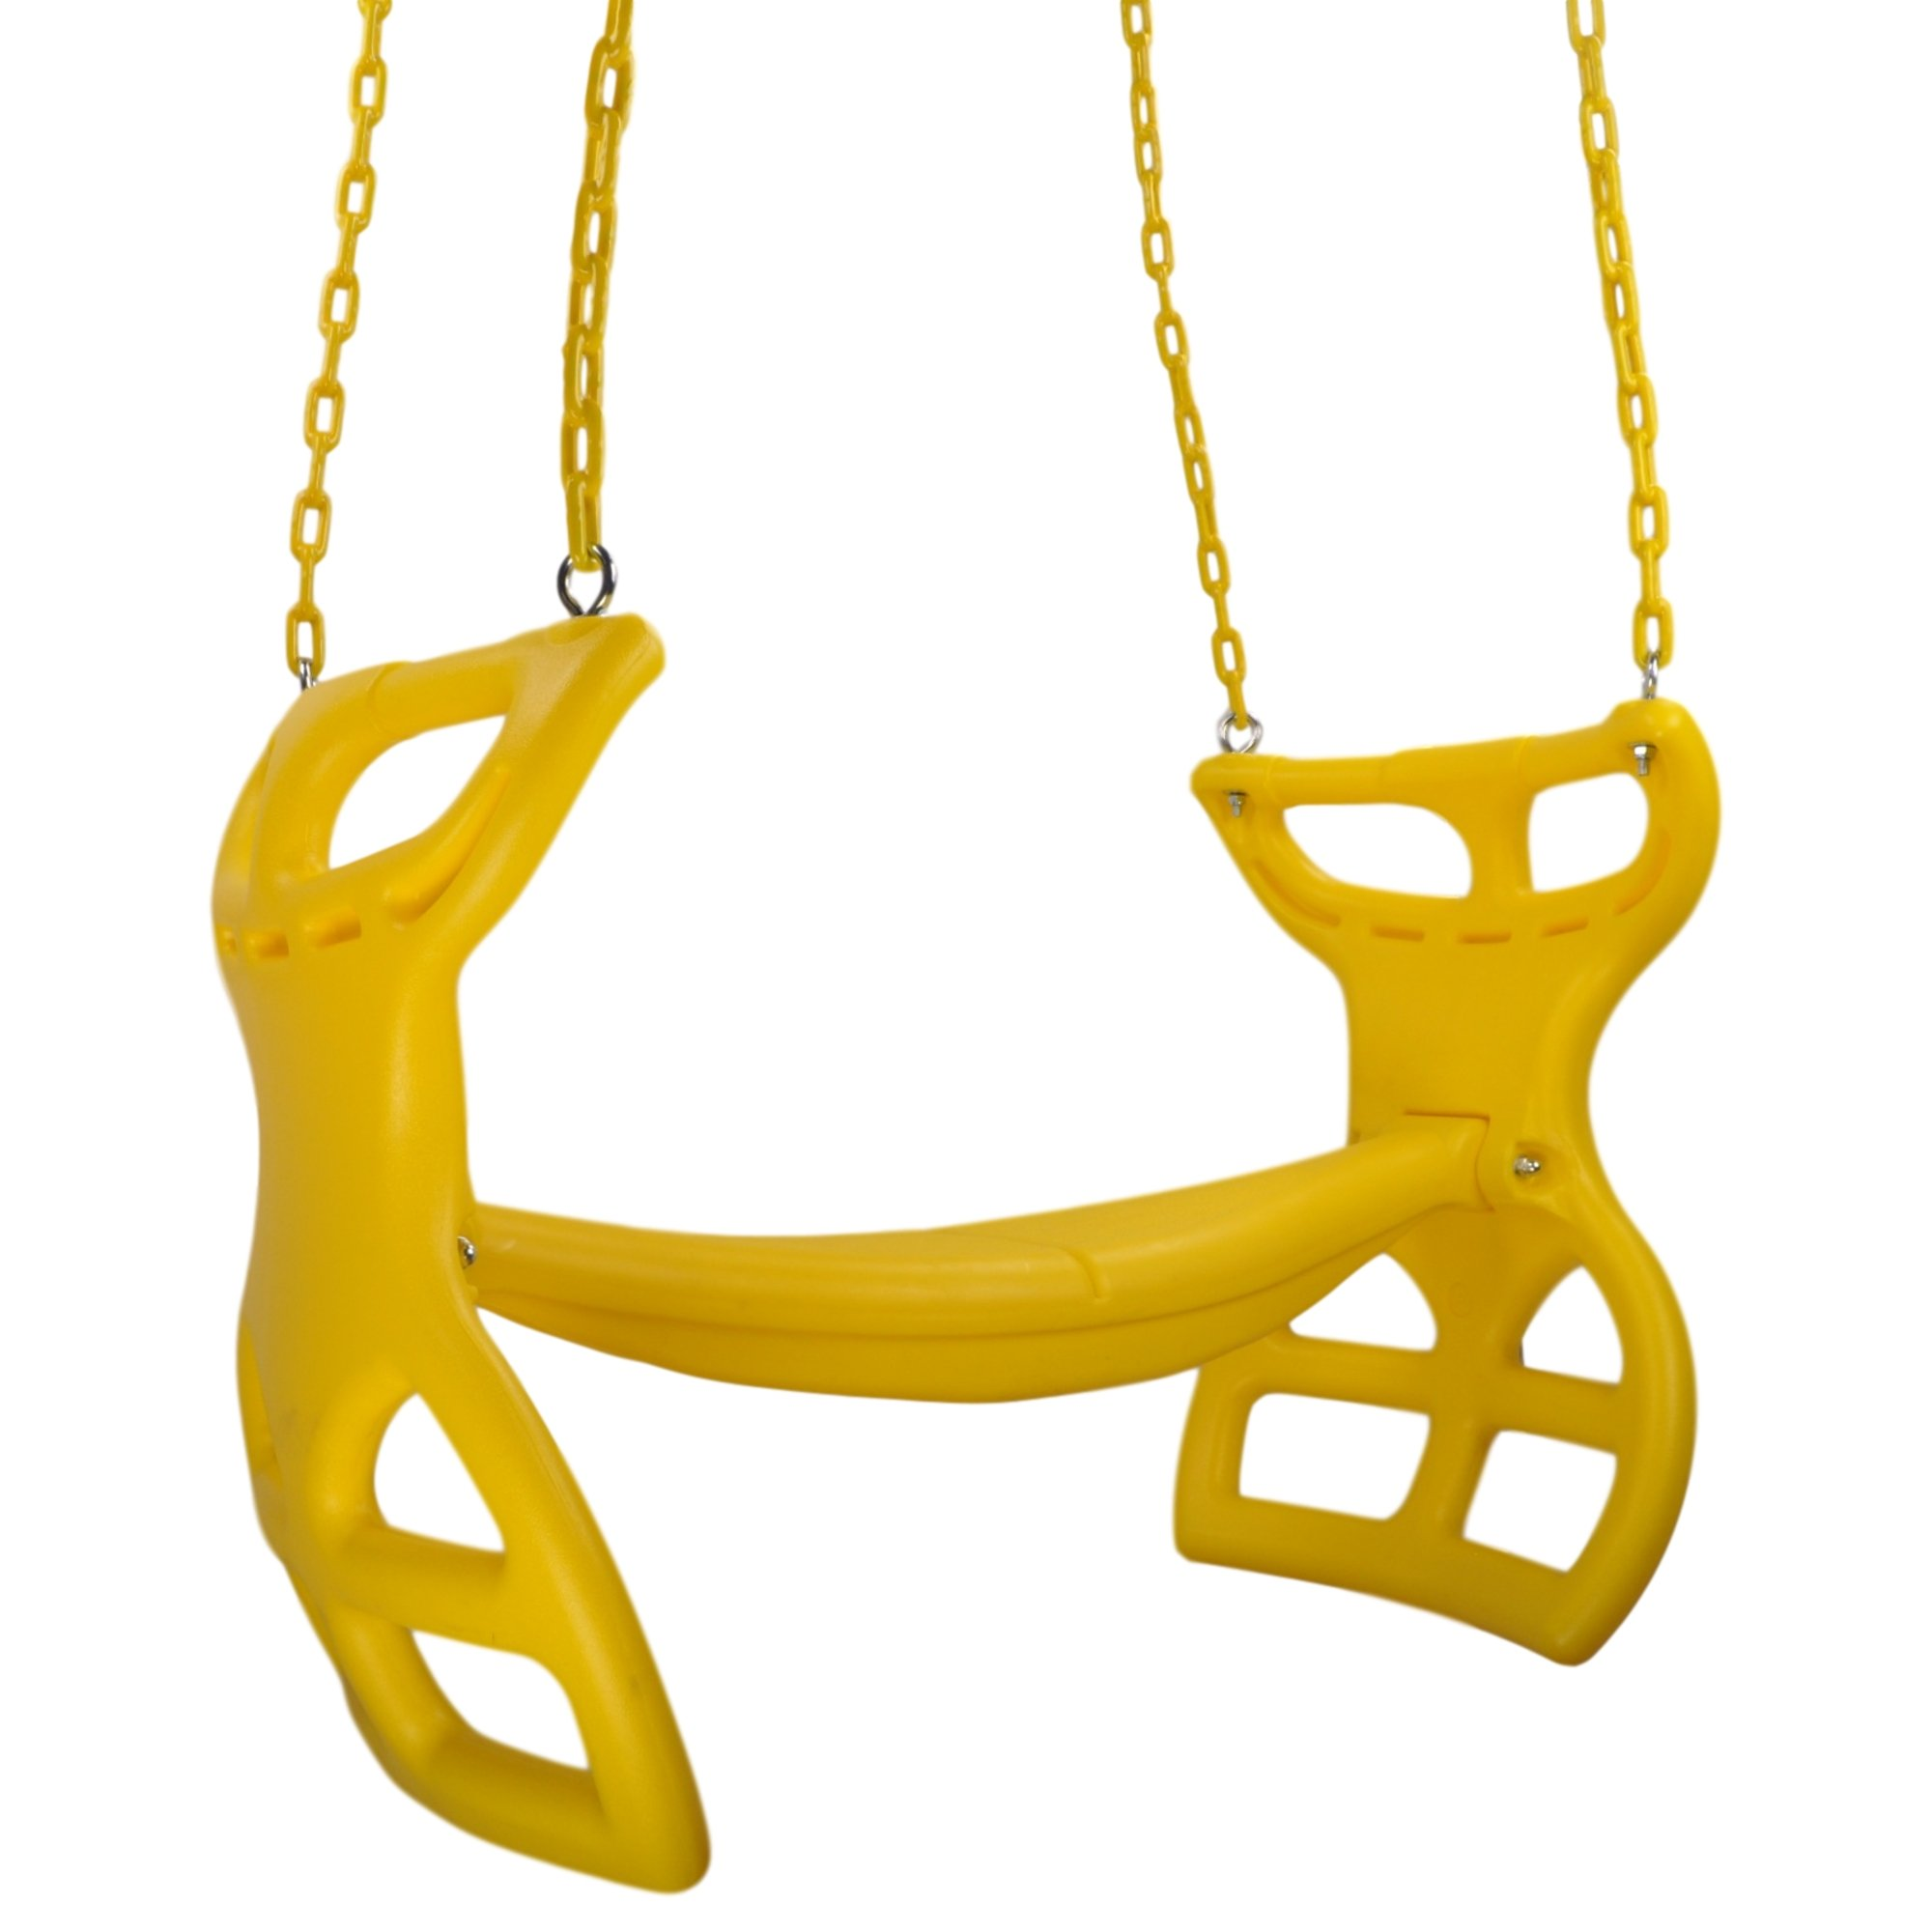 Swing Set Stuff Inc. Glider with Coated Chains & SSS Logo Sticker Playground Attachment, Yellow